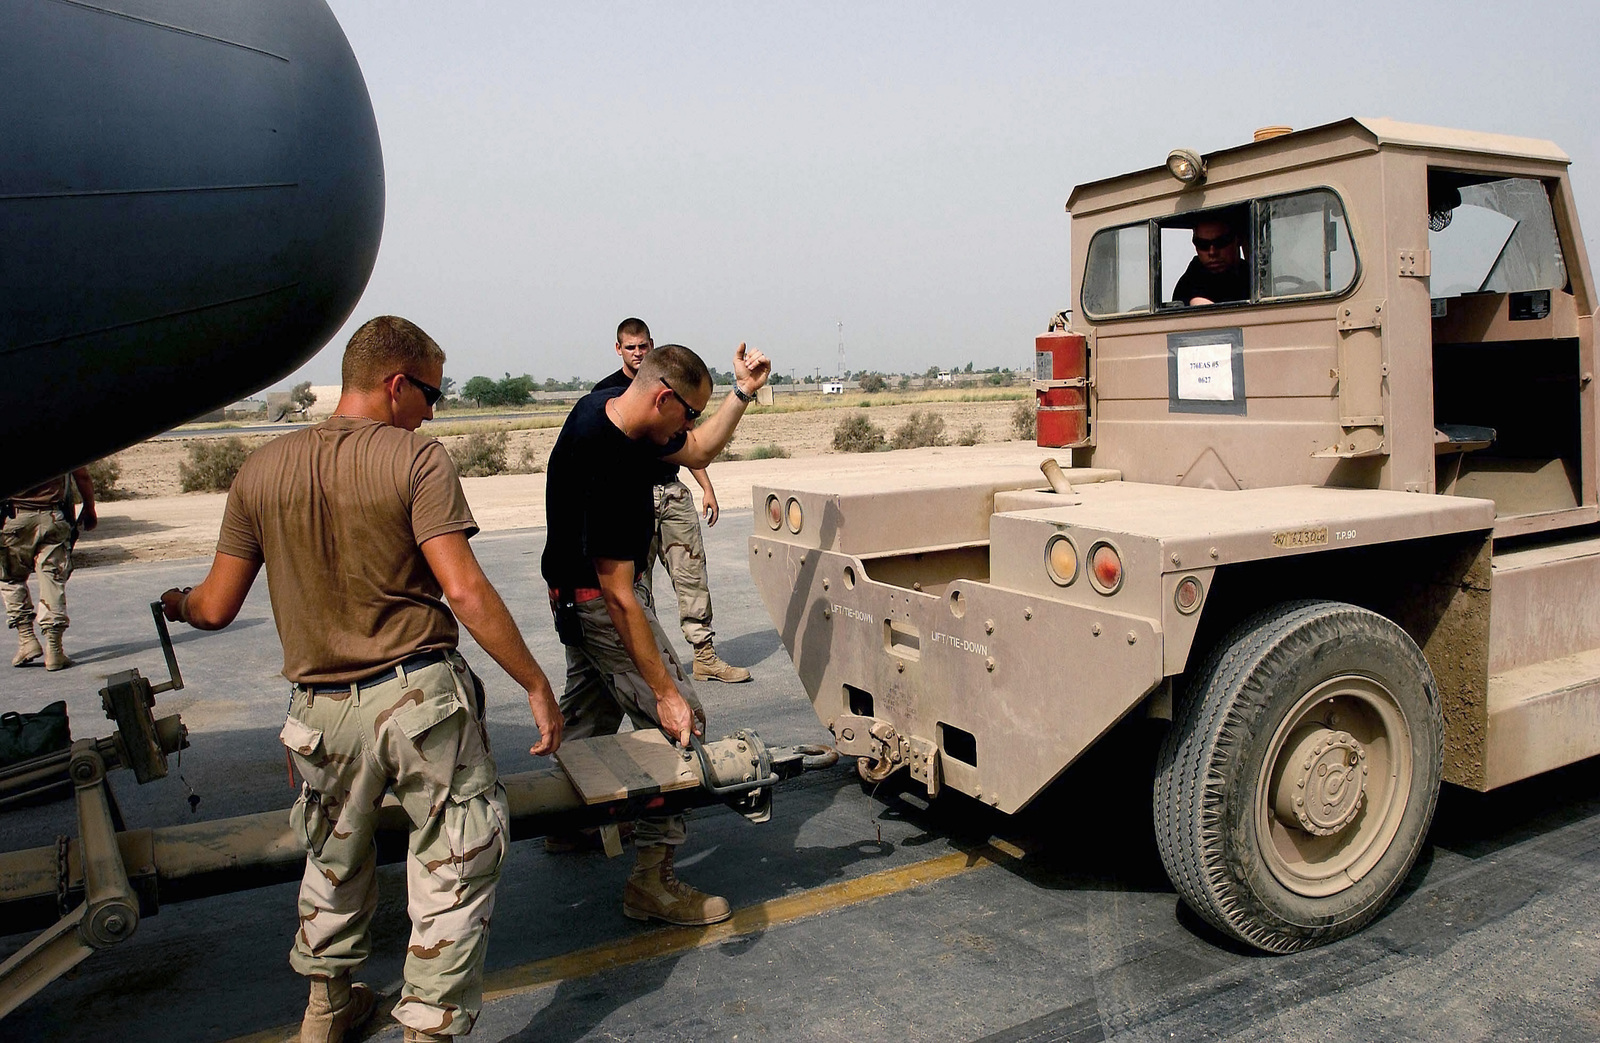 US Air Force (USAF) AIRMAN First Class (A1C) Derek Smith, an engine mechanic with the 776th Expeditionary Airlift Squadron (EAS), connects a C-130 Hercules cargo aircraft to a aircraft Tug truck at a forward deployed location (FDL) in support of Operation ENDURING FREEDOM